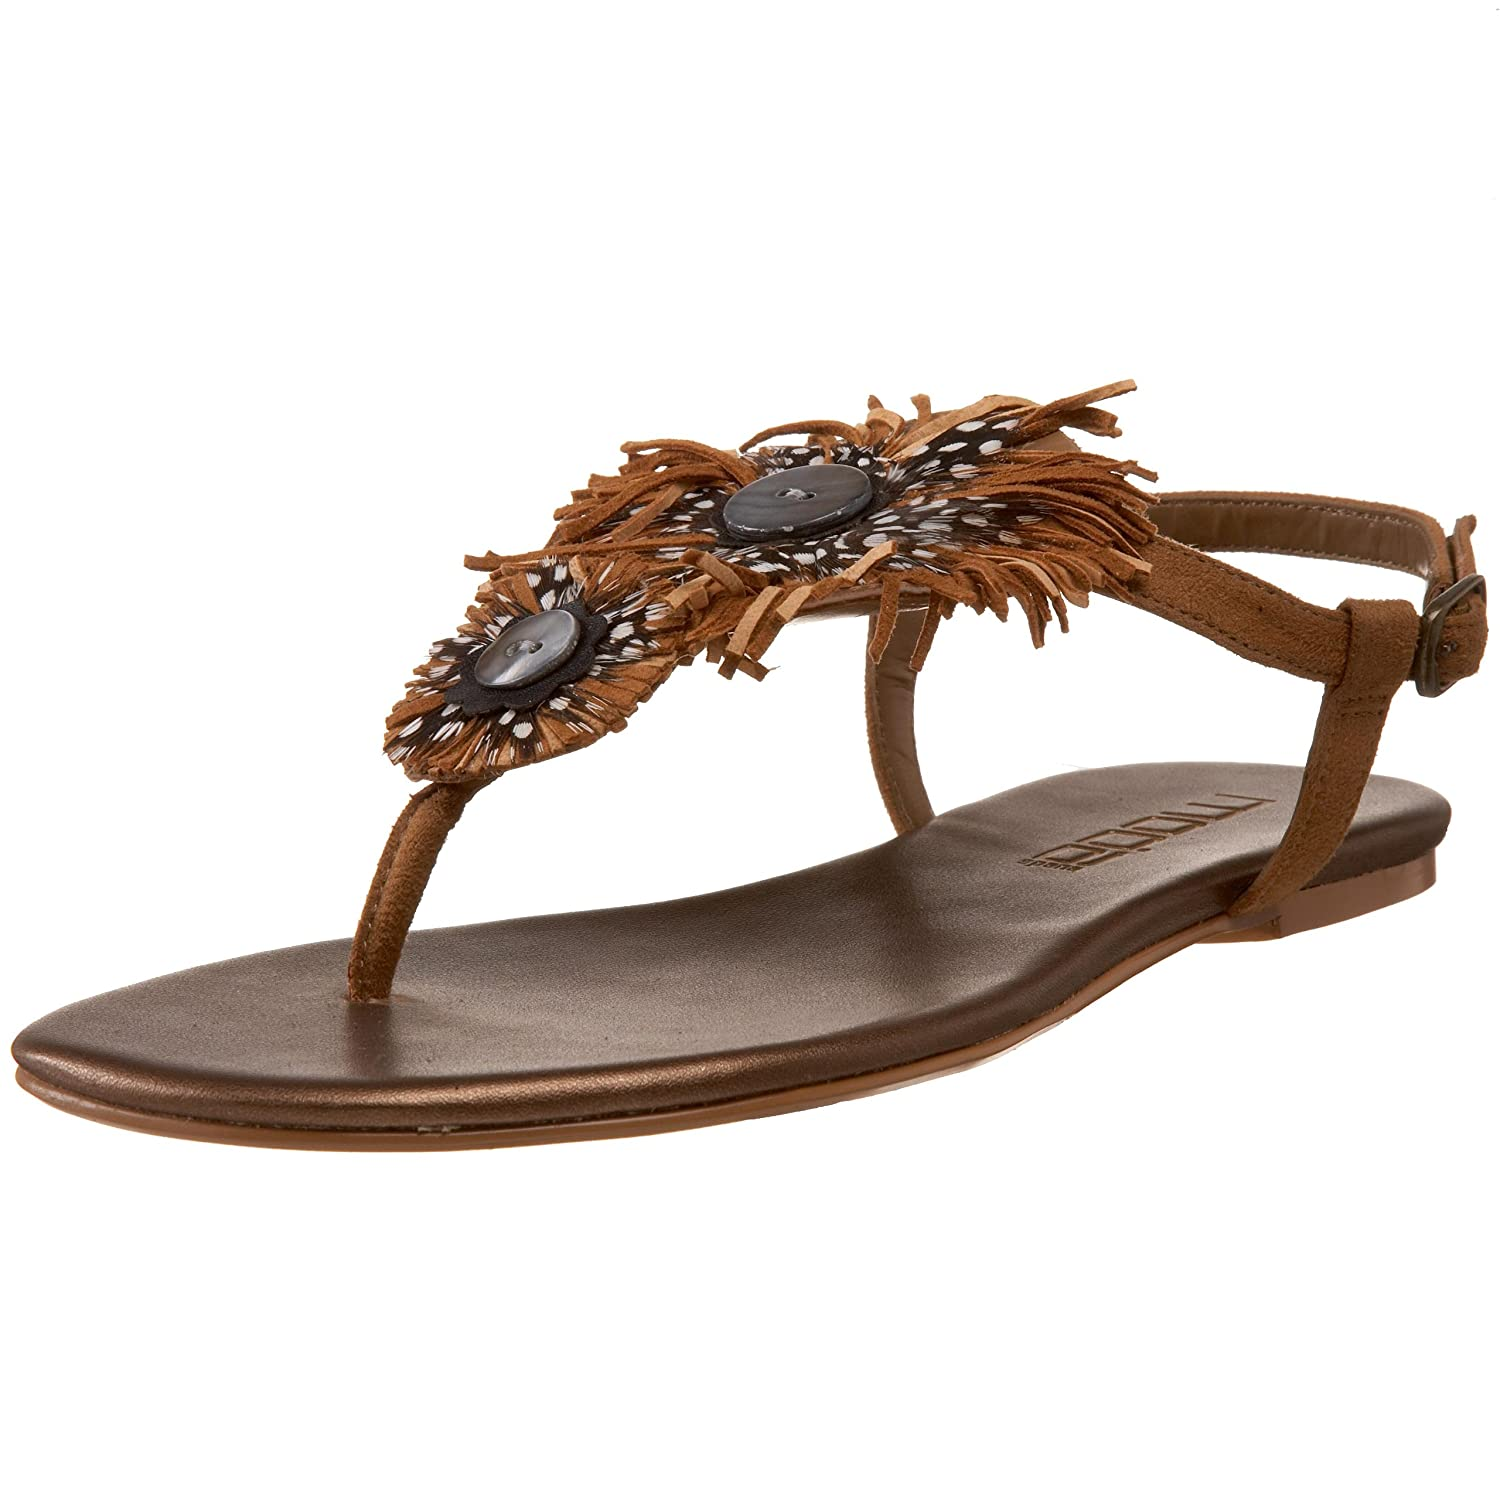 Moda Spana - Women's Jerash Sandal from endless.com